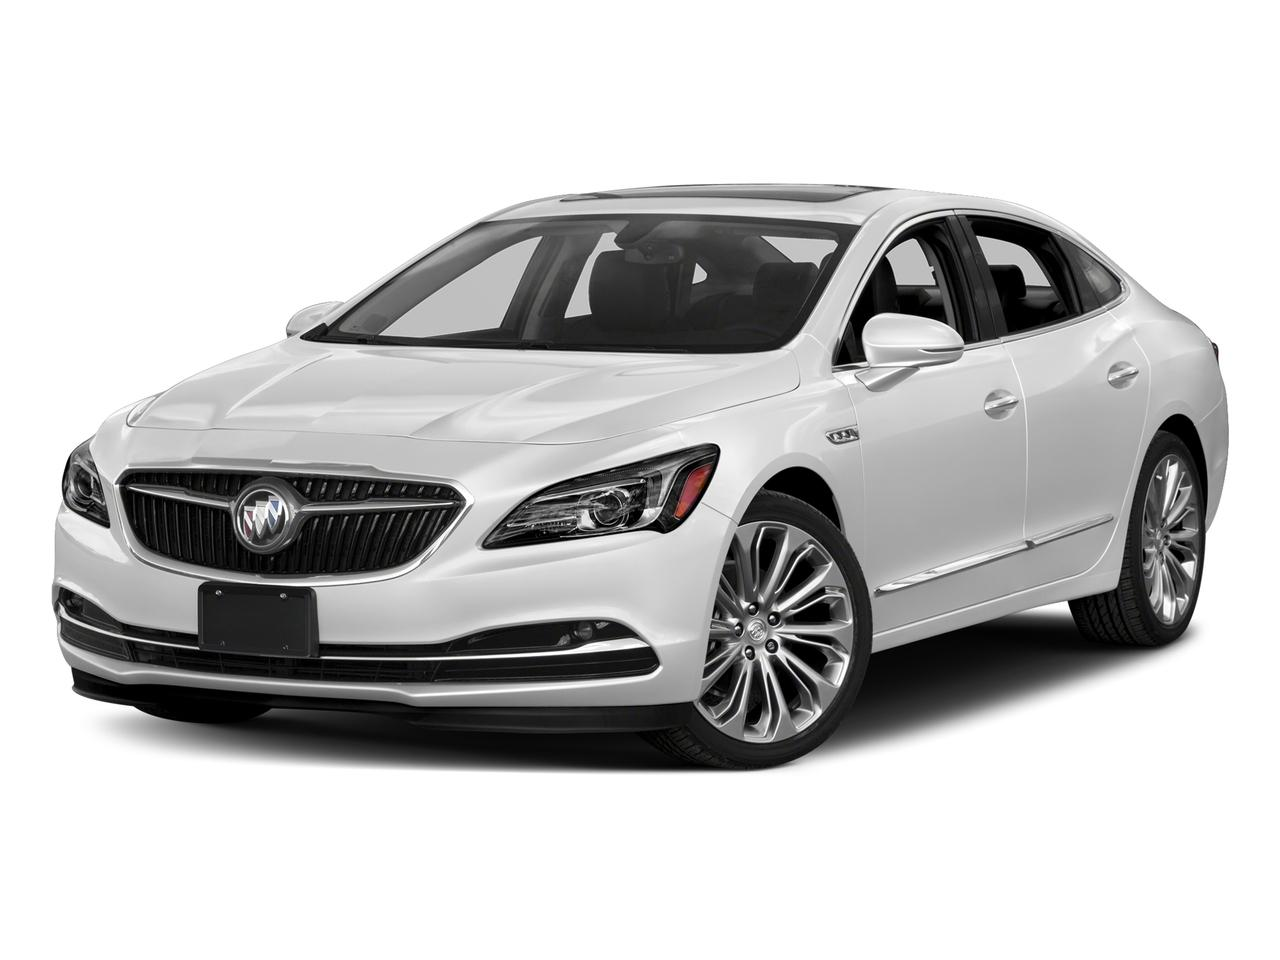 2017 Buick LaCrosse Vehicle Photo in Plainfield, IL 60586